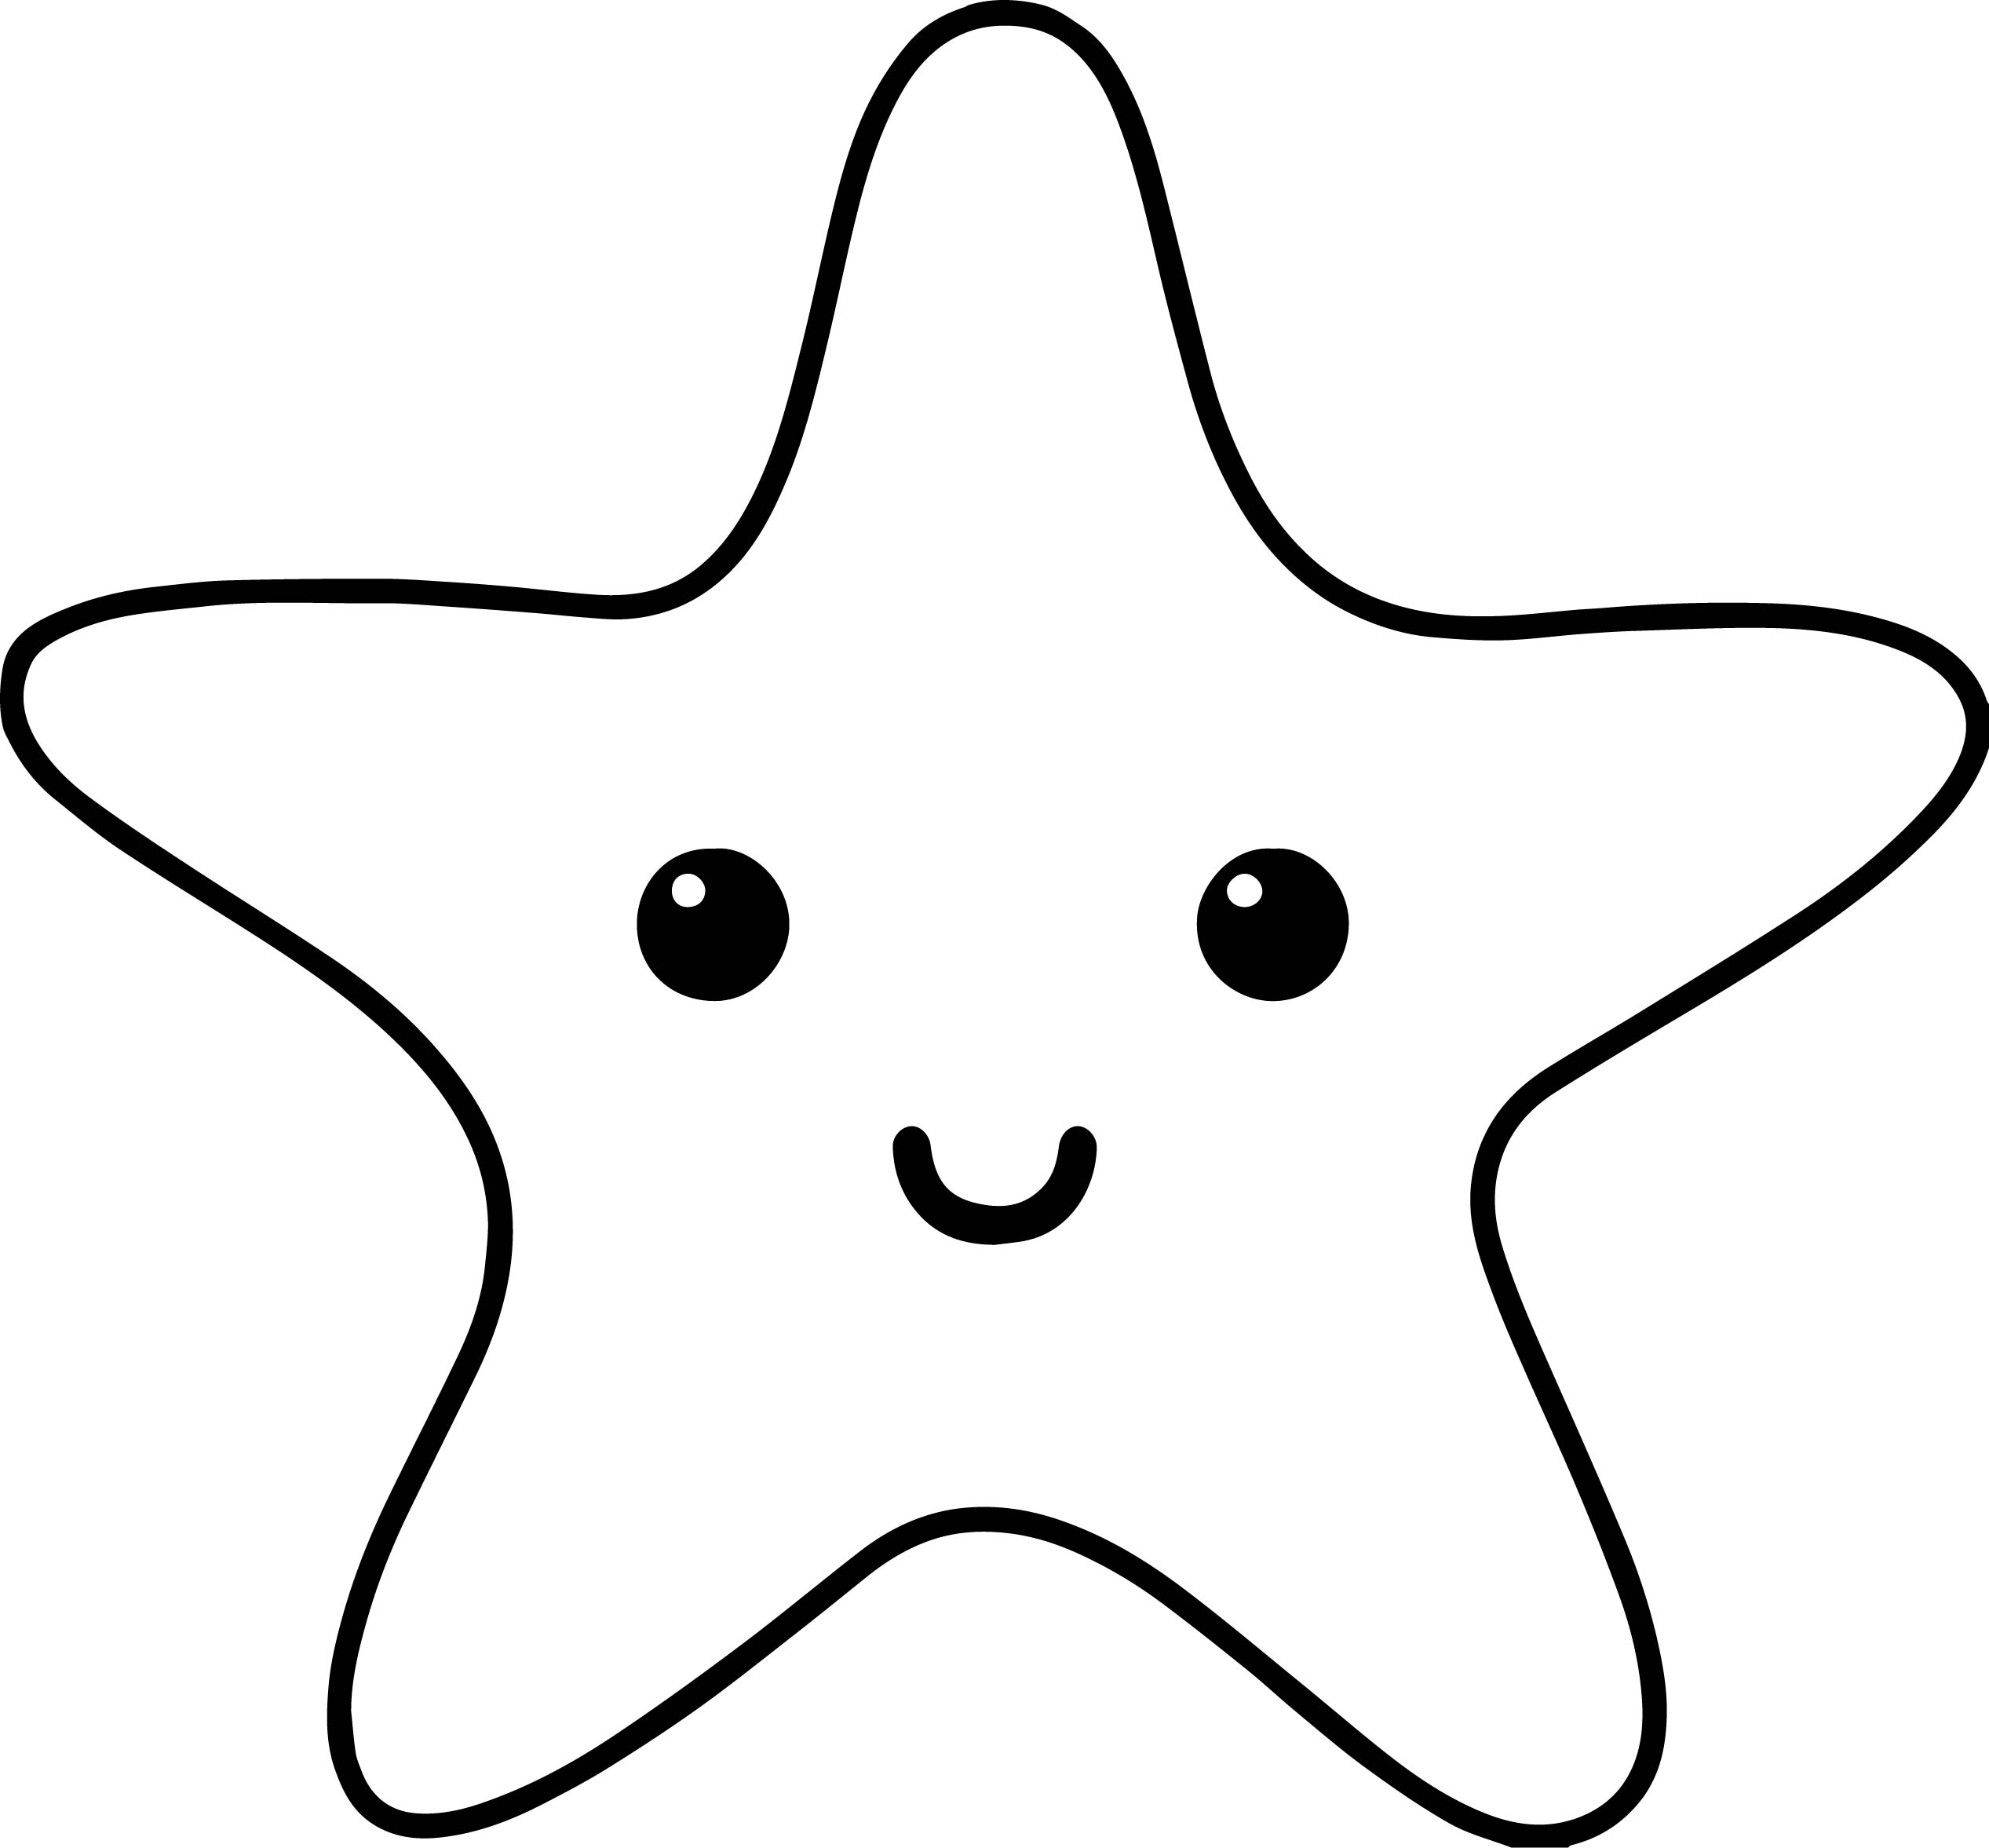 Starfish Coloring Pages Prepossessing Starfish Sea Creatures Coloring Page  Wecoloringpage Inspiration